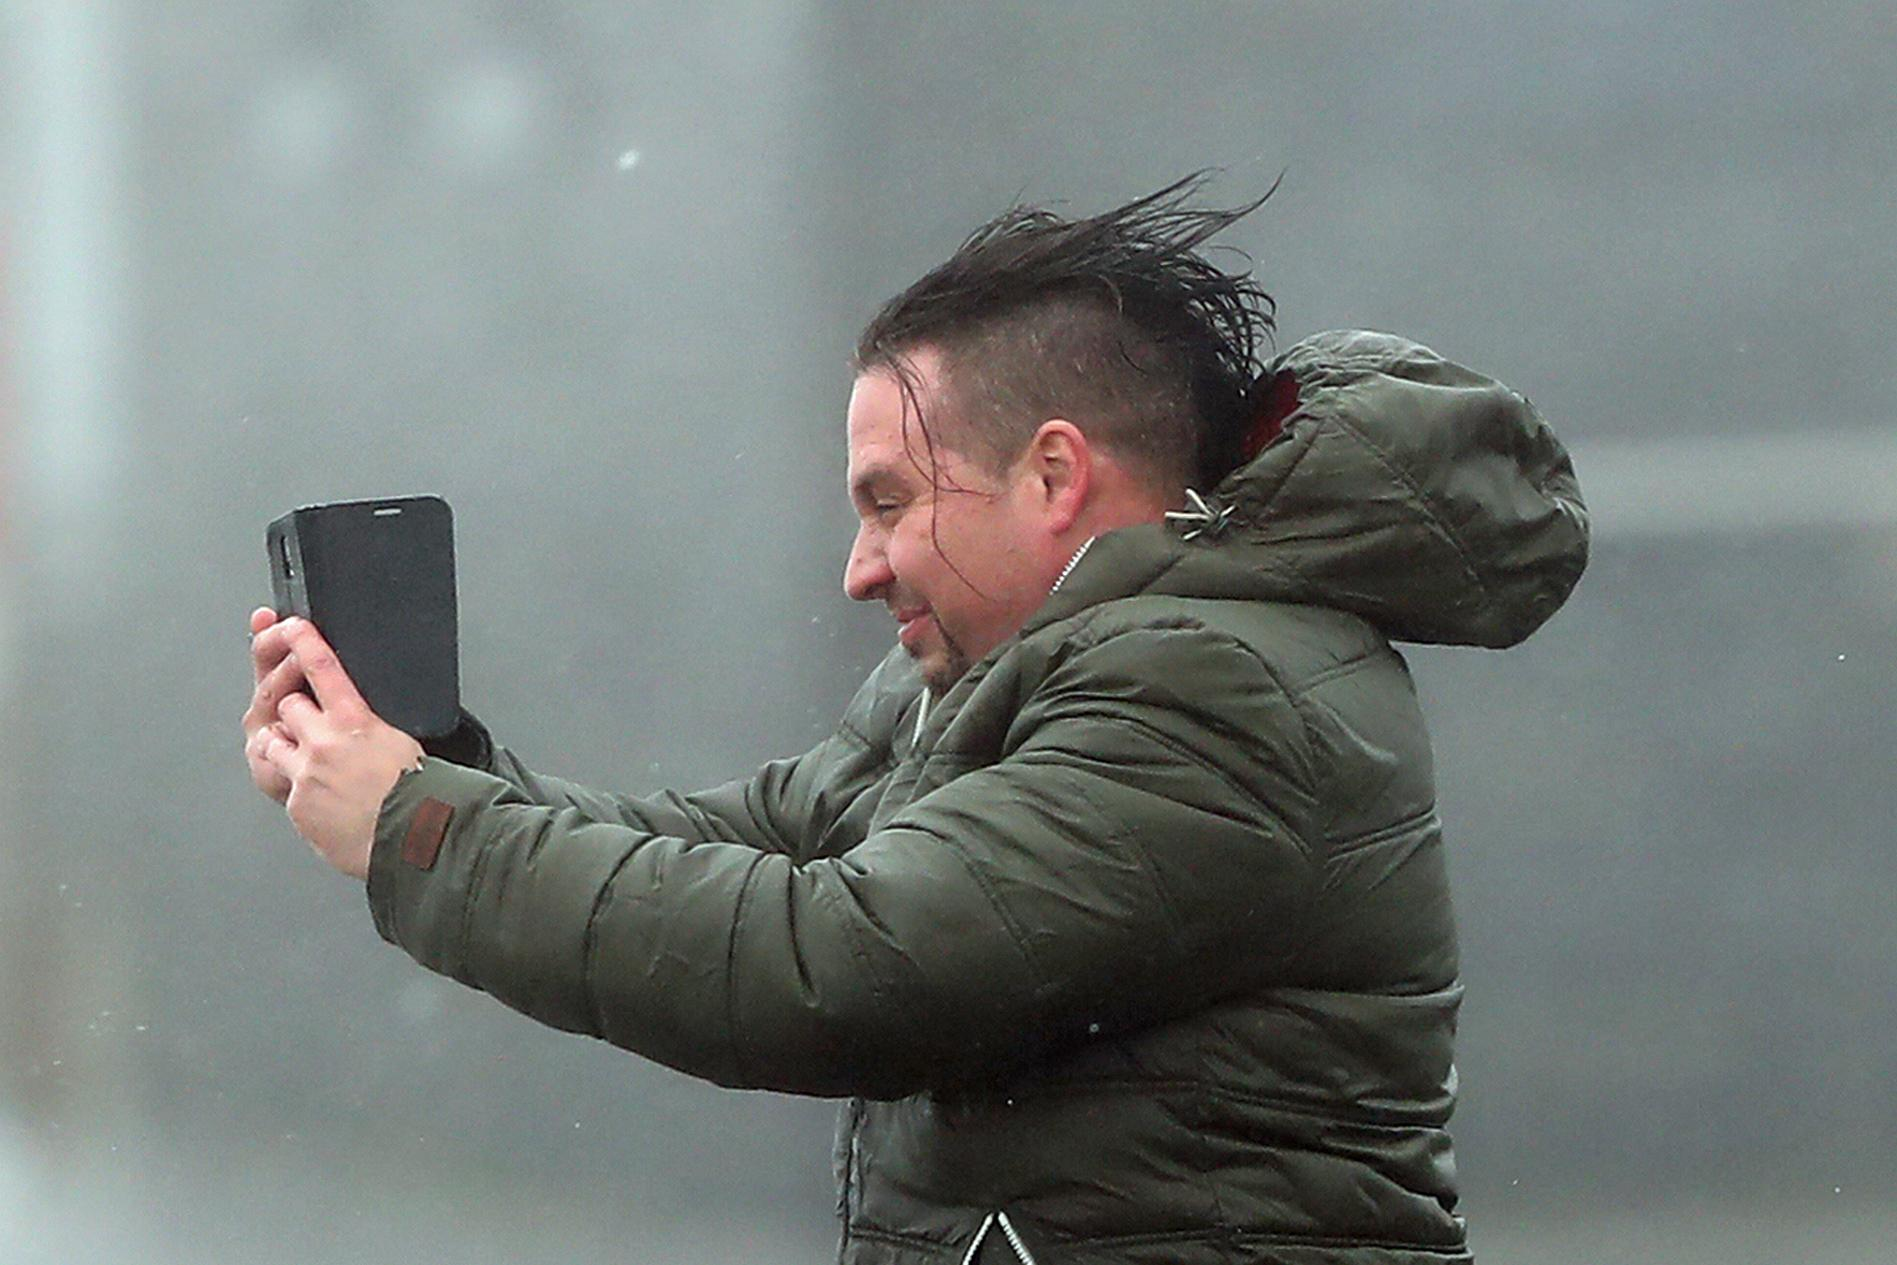 A man take selfie in the high wind at Lahinch on the west coast of Ireland  Monday Oct. 16, 2017, as the remnants of  Hurricane Ophelia begins to hit Ireland and parts of Britain. Ireland's meteorological service is predicting wind gusts of 120 kph to 150 kph (75 mph to 93 mph), sparking fears of travel chaos. Some flights have been cancelled, and aviation officials are warning travelers to check the latest information before going to the airport Monday.  (Niall Carson/PA via AP)